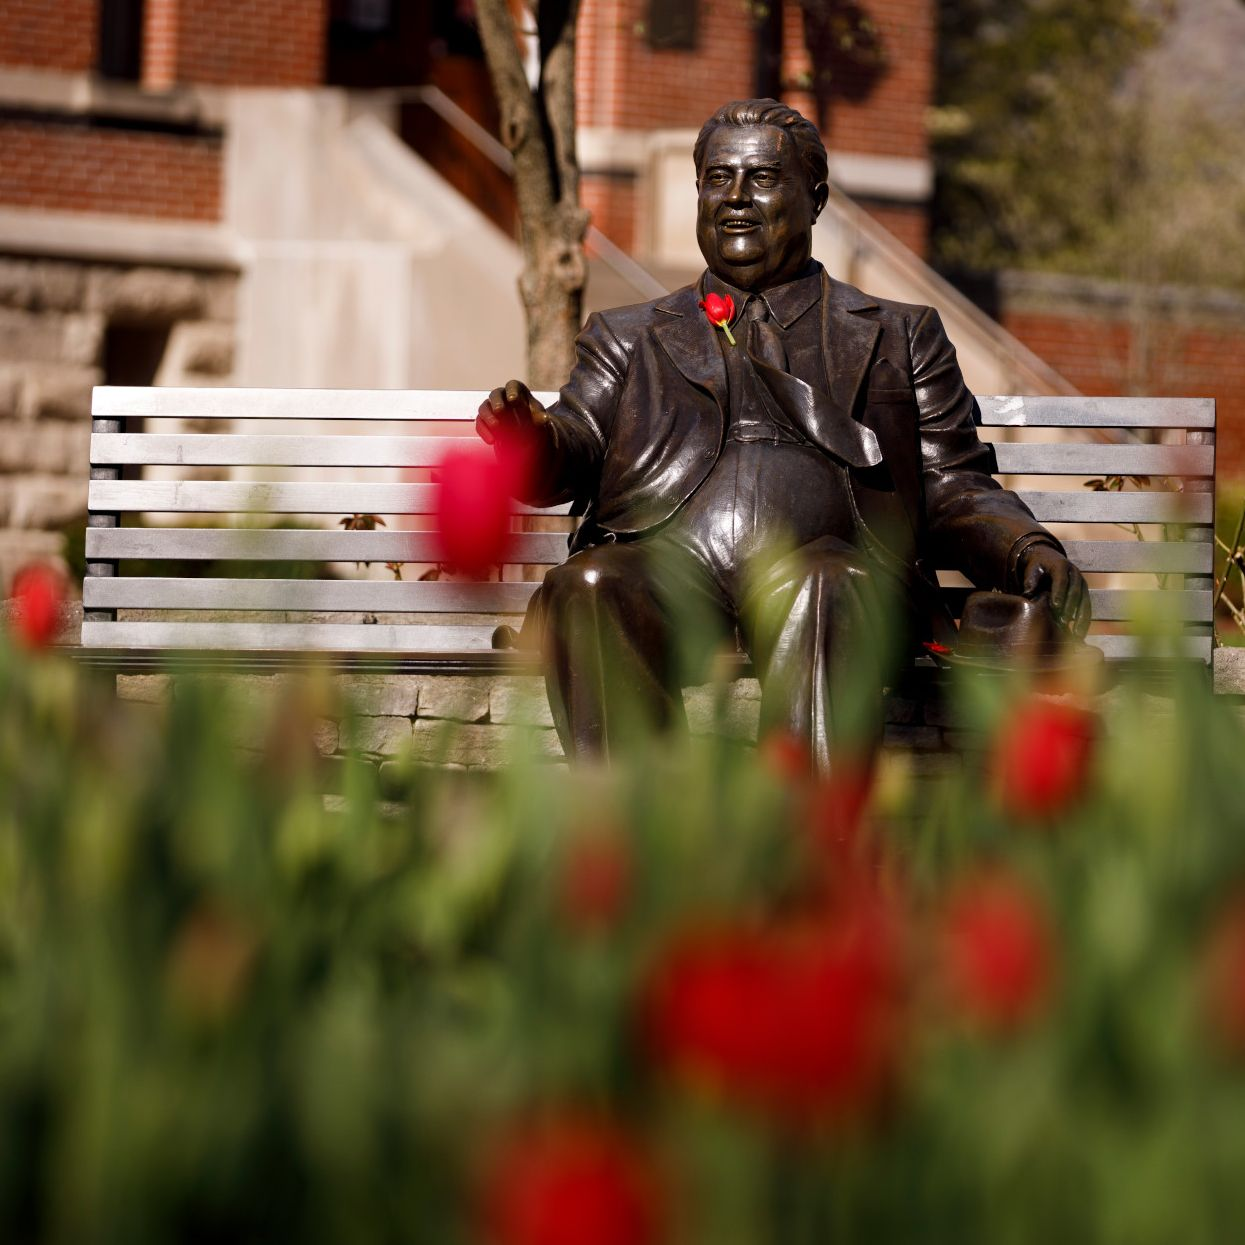 Red tulips bloom in front of the Herman B Wells statue.